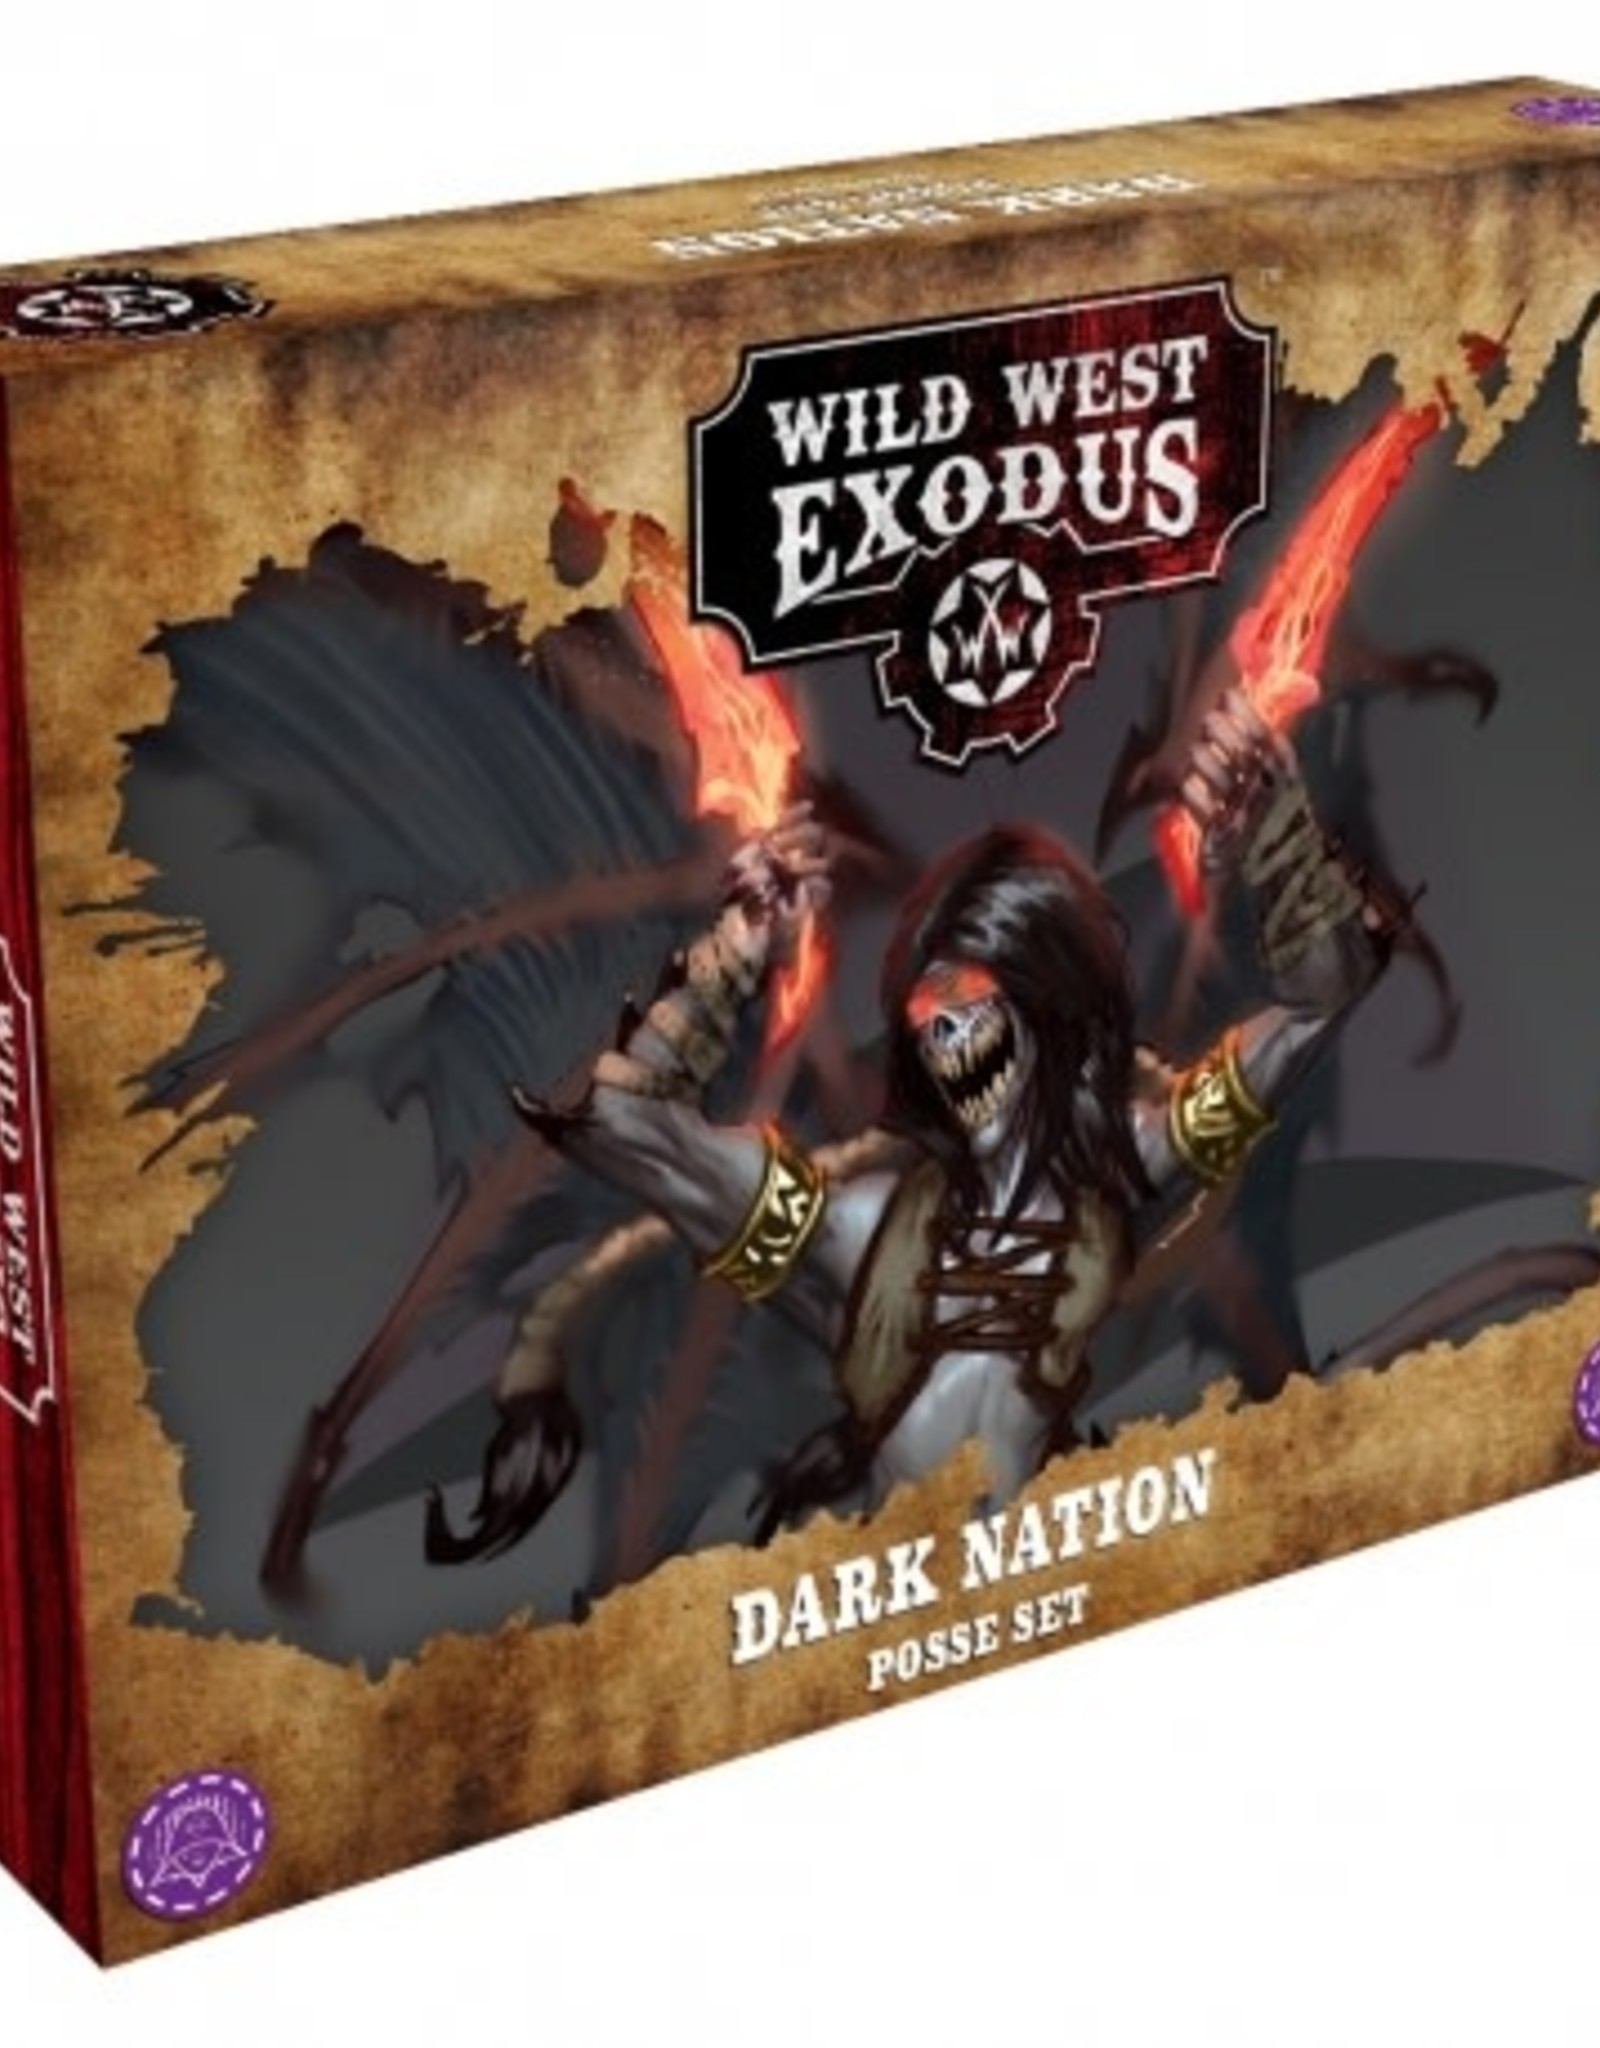 Warcradle Dark Nation Posse Box